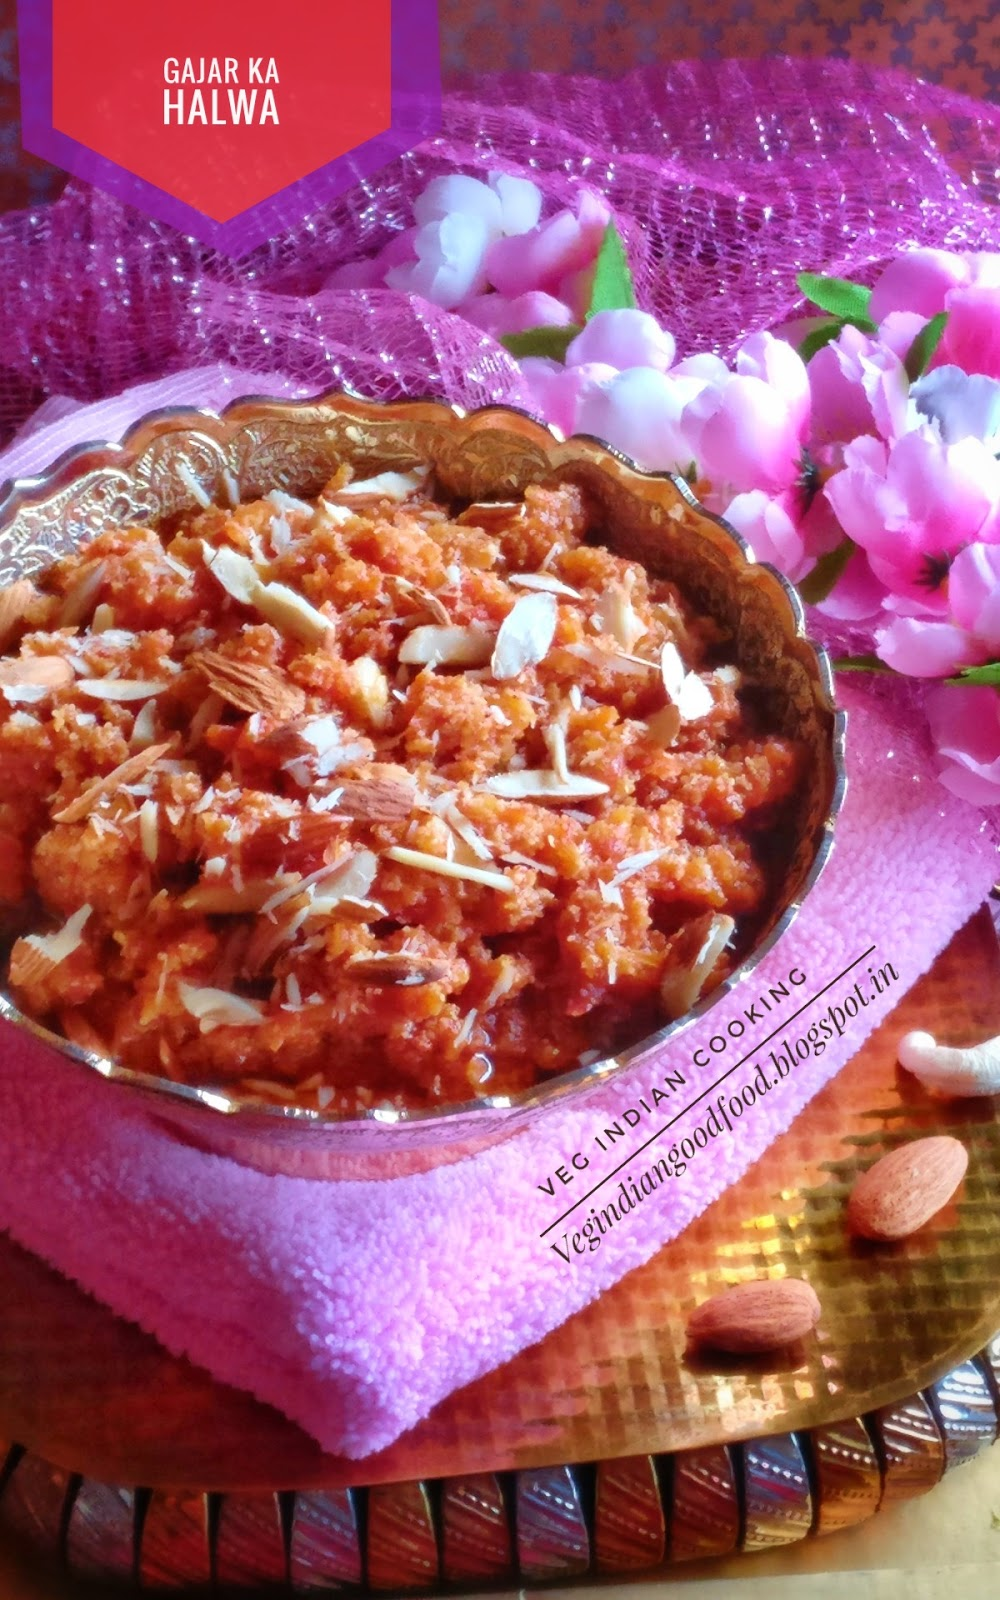 Veg indian cooking gajar ka halwa gajar ka halwa is the most popular indian dessert made during the winter months it is prepared by cooking grated red carrots with ghee milk khoya sugar forumfinder Gallery